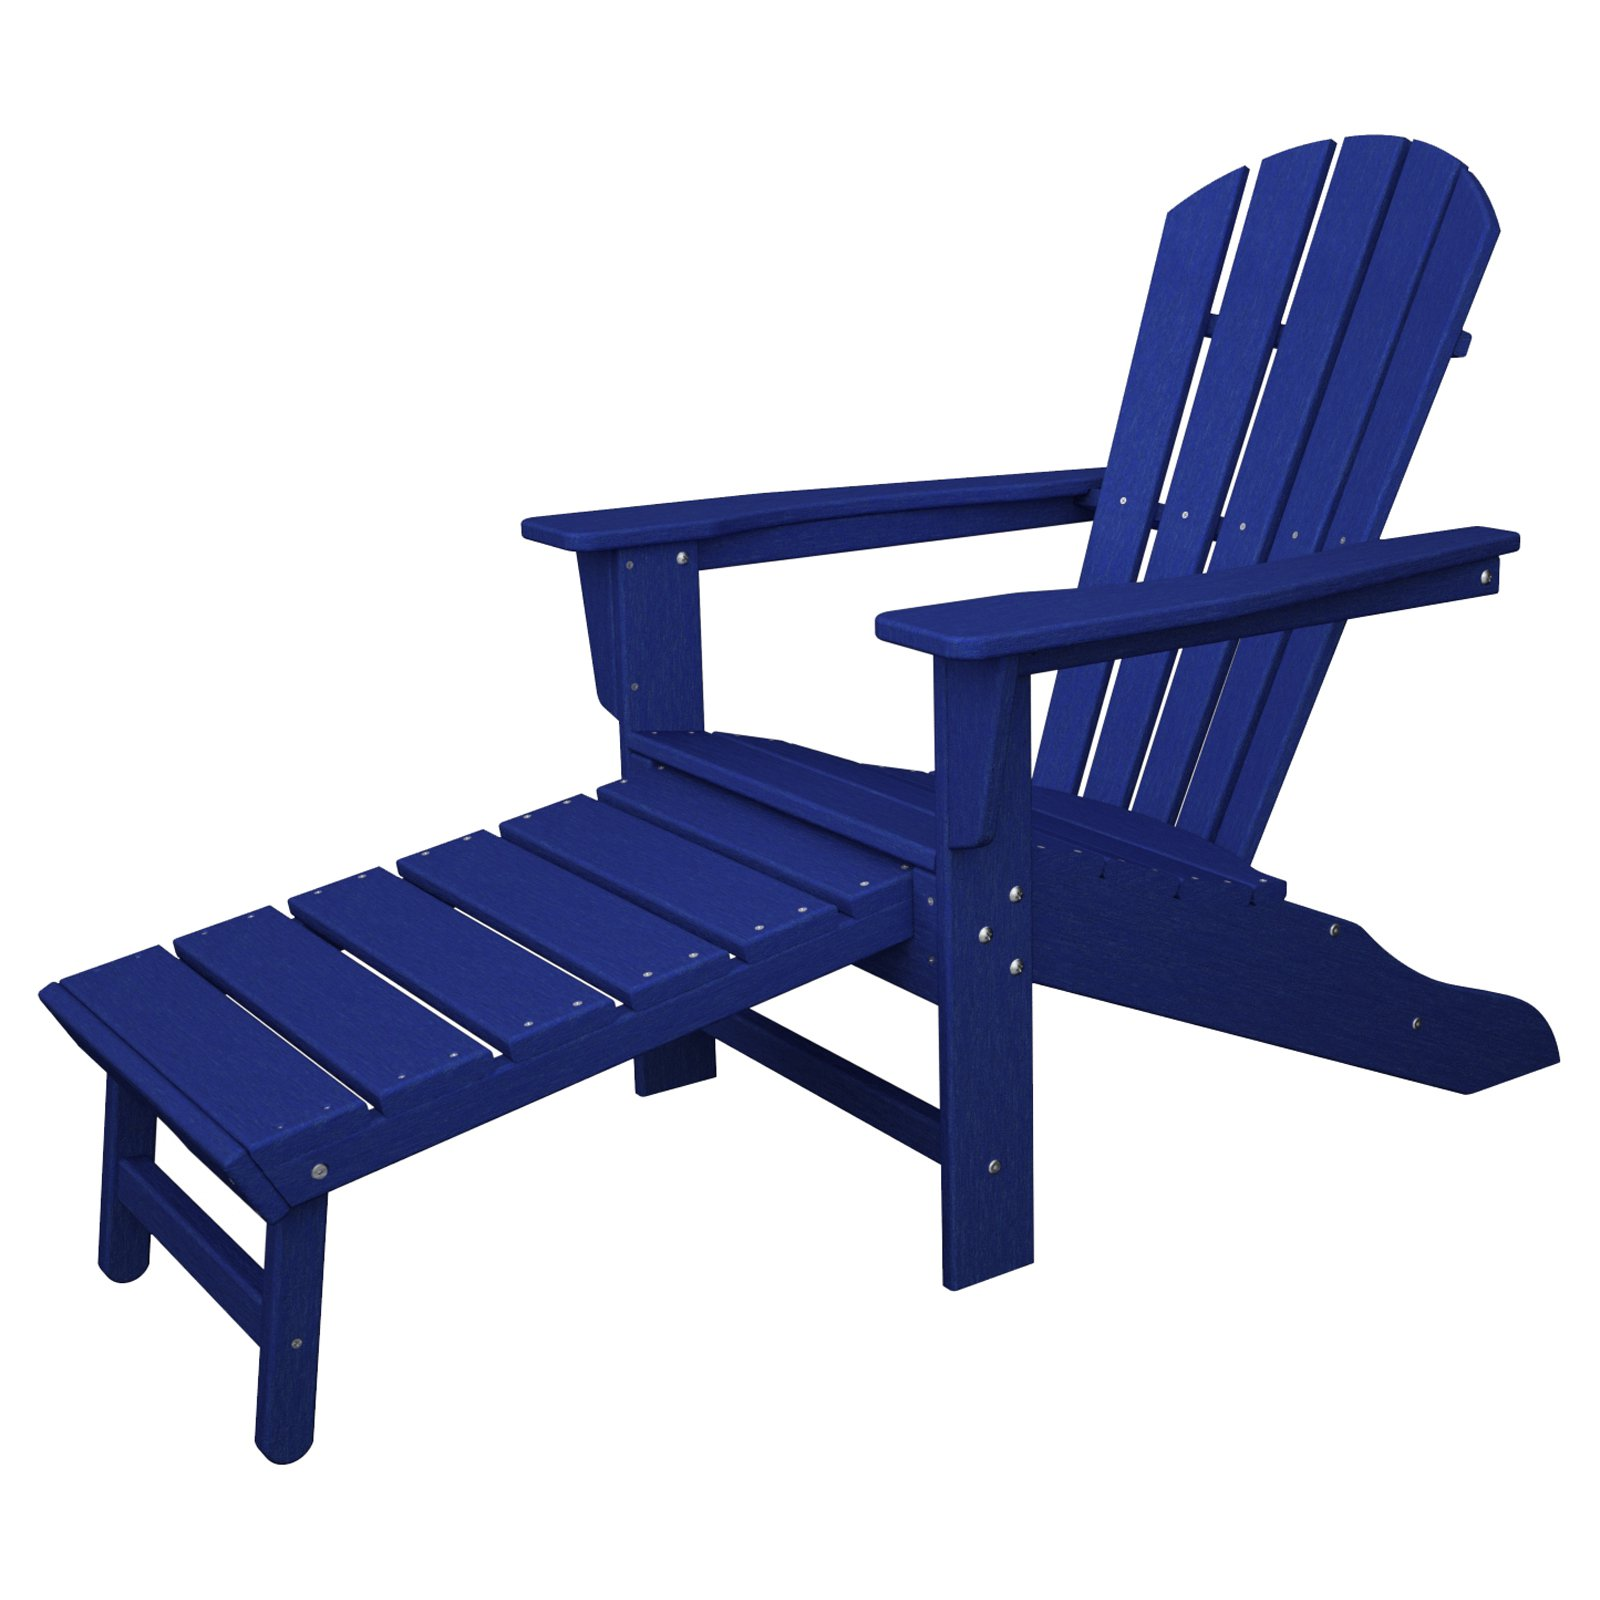 POLYWOOD South Beach Ultimate Adirondack Chair with Hideaway Ottoman by Polywood